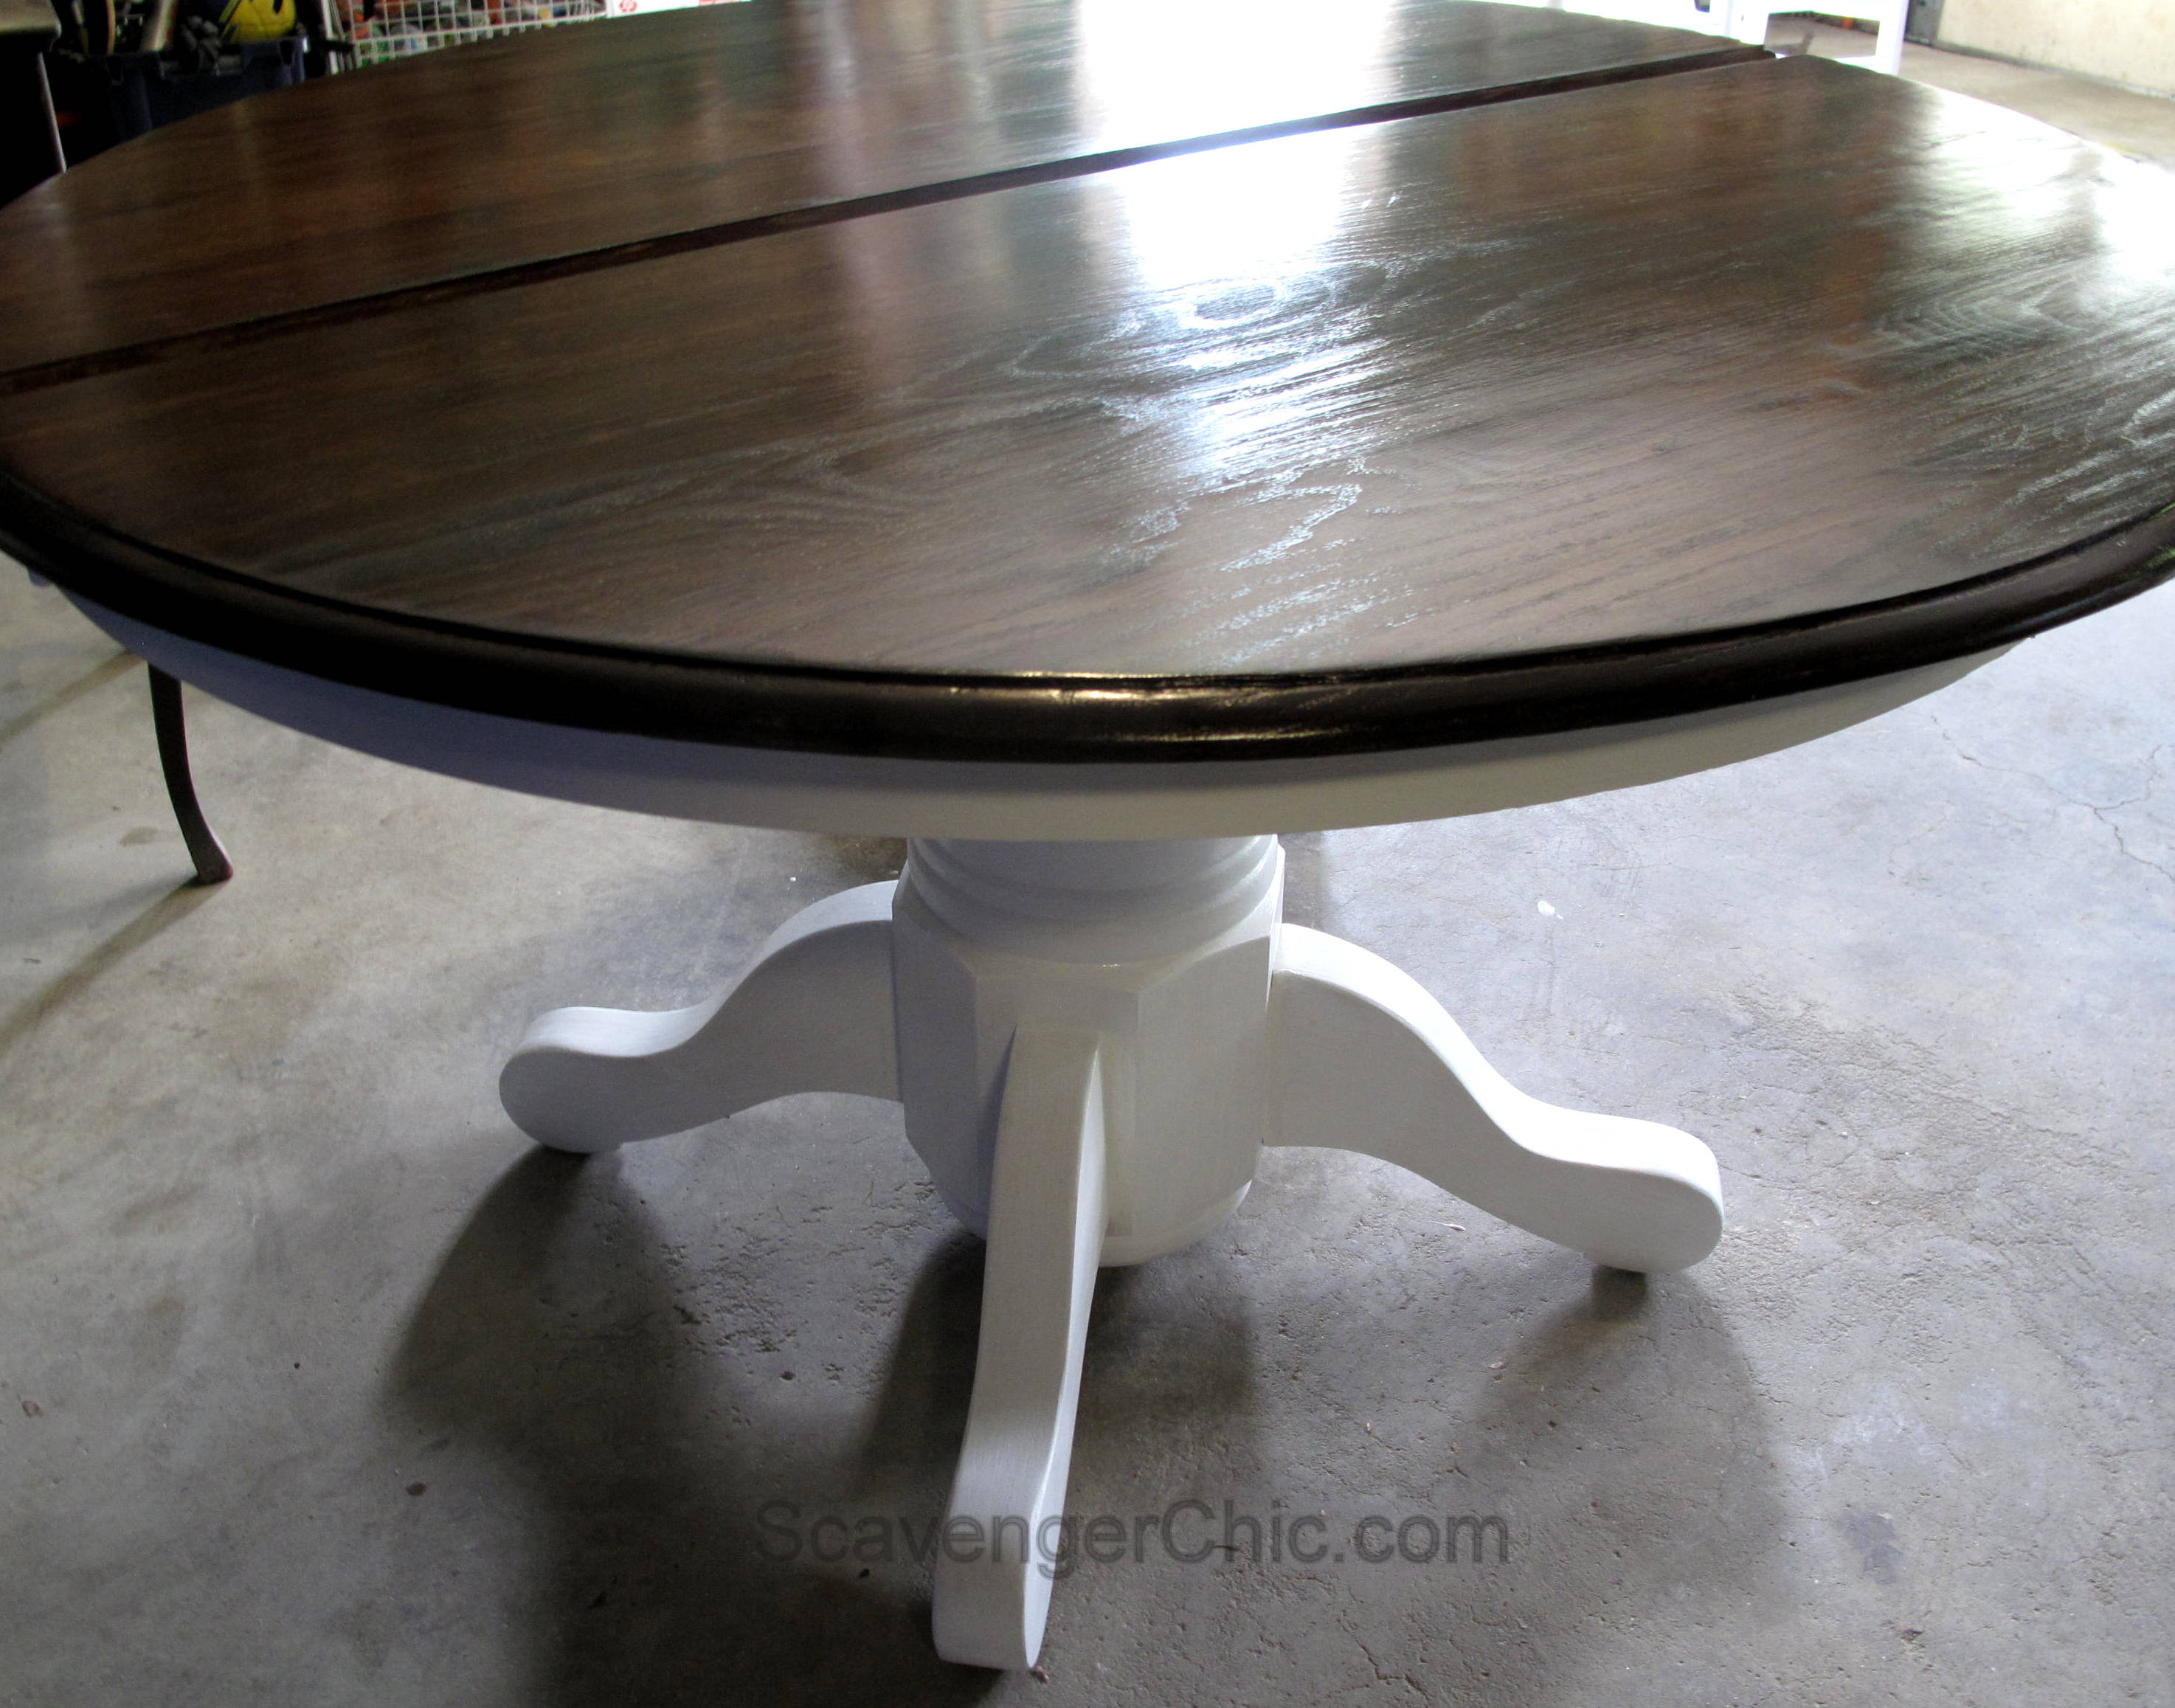 pedestal table and chairs zero gravity chair oversized makeover scavenger chic